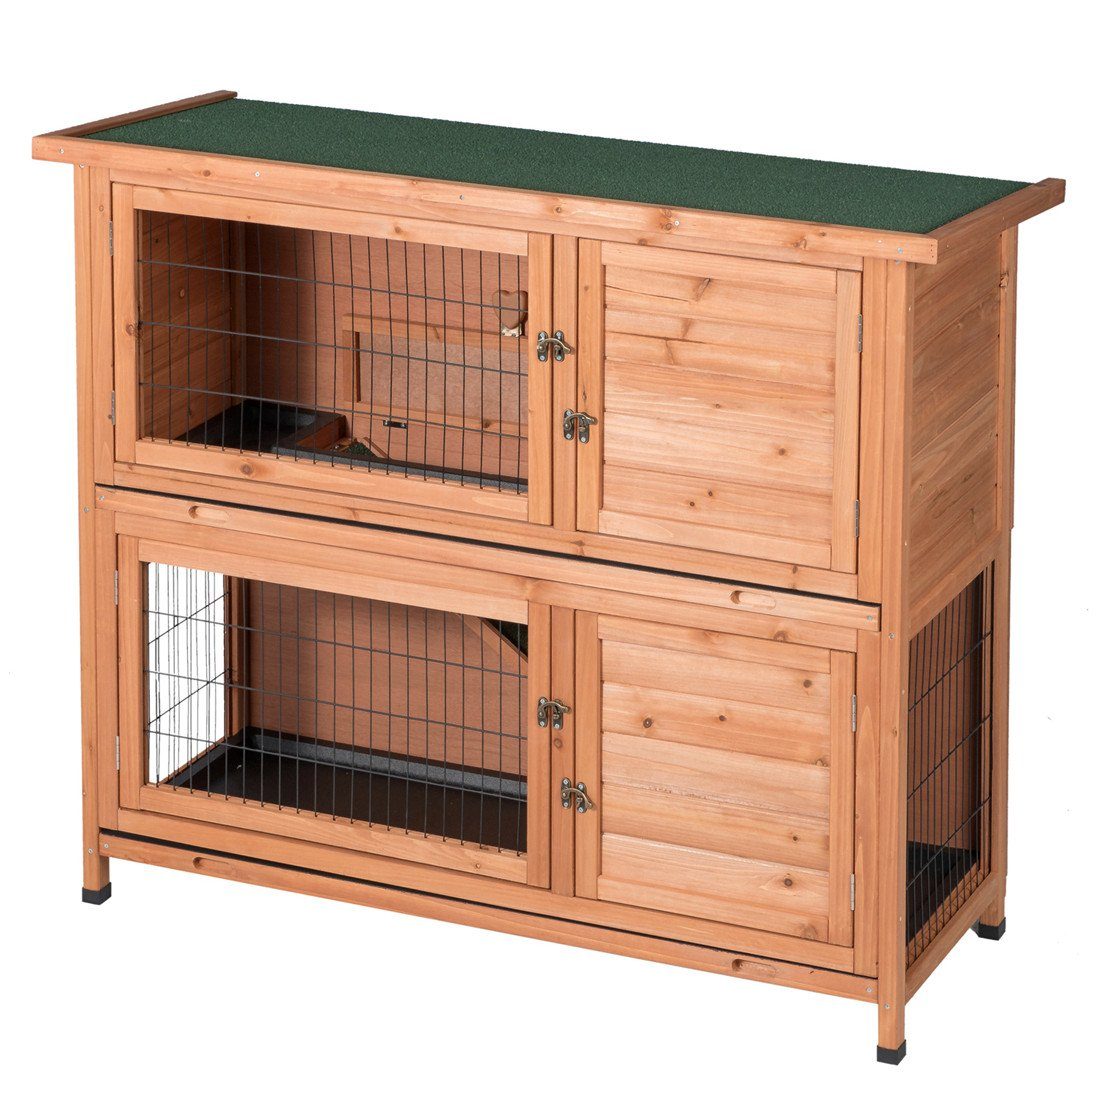 GOOD LIFE Two Floors Wooden Outdoor Indoor Bunny Hutch Rabbit Cage Guinea Pig Coop PET House for Small Animals Nature Color PET383